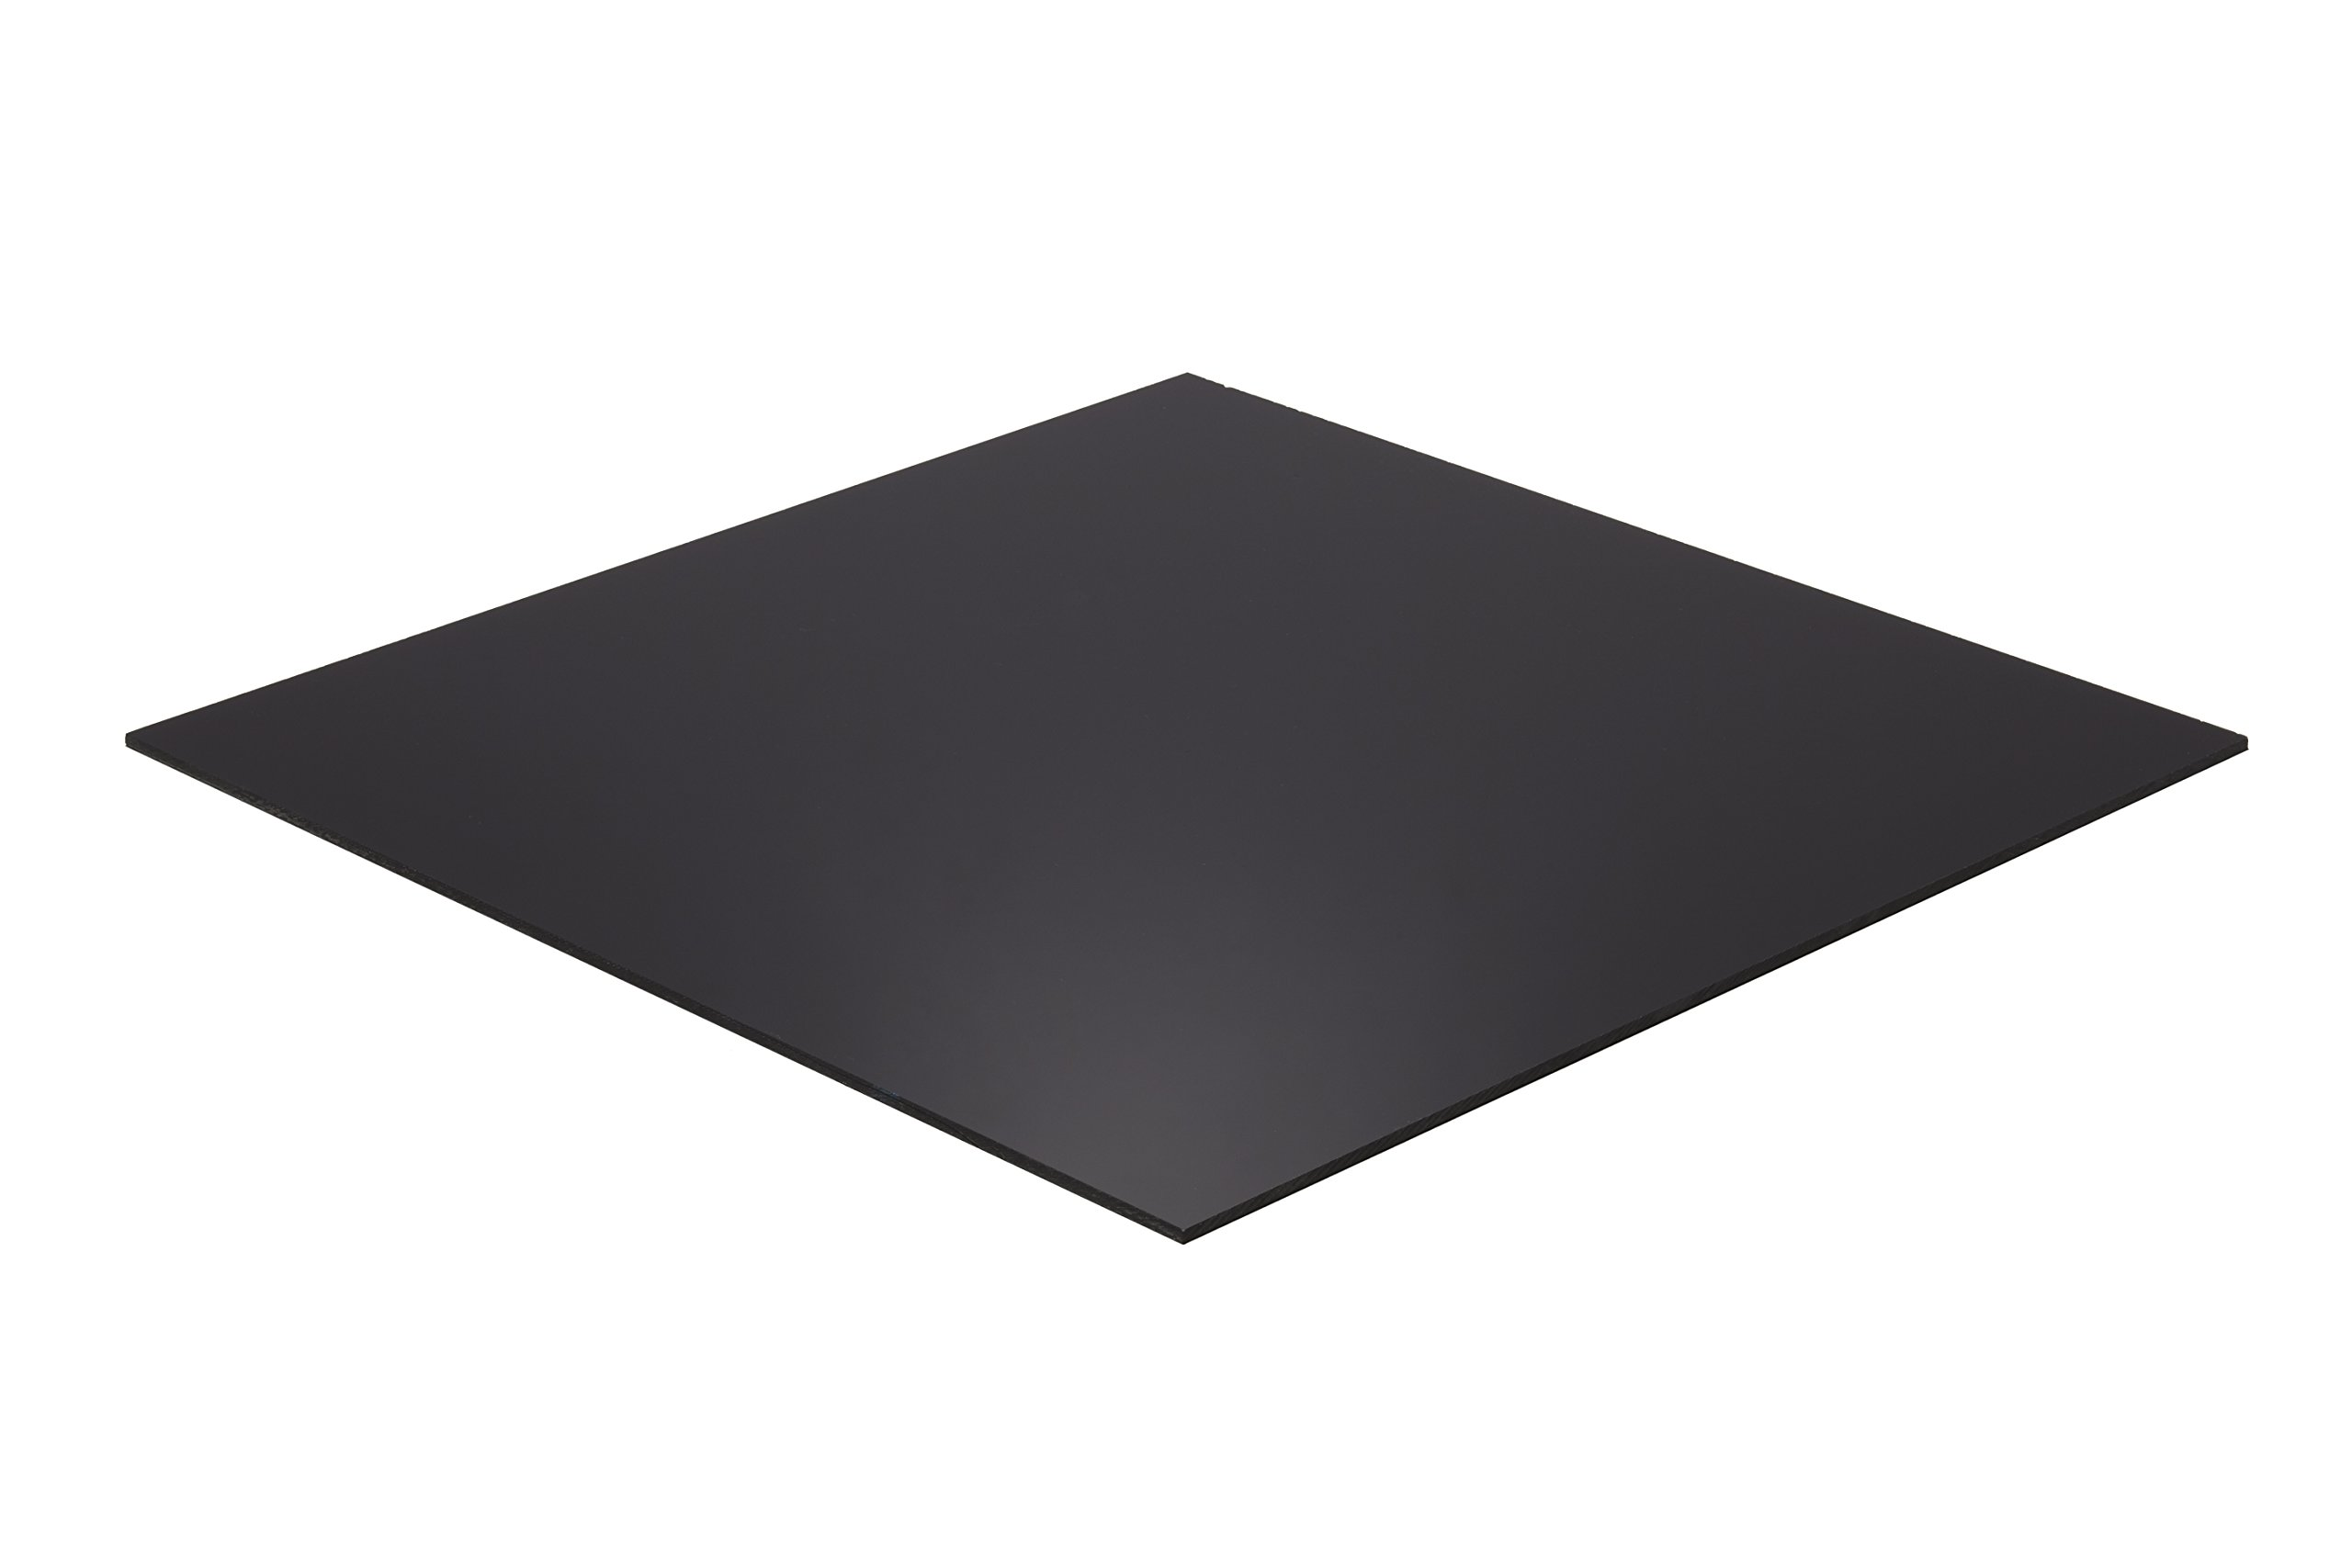 Falken Design BK2025-1-8/2436 Acrylic Black Sheet, 24'' x 36'', 1/8'' Thick